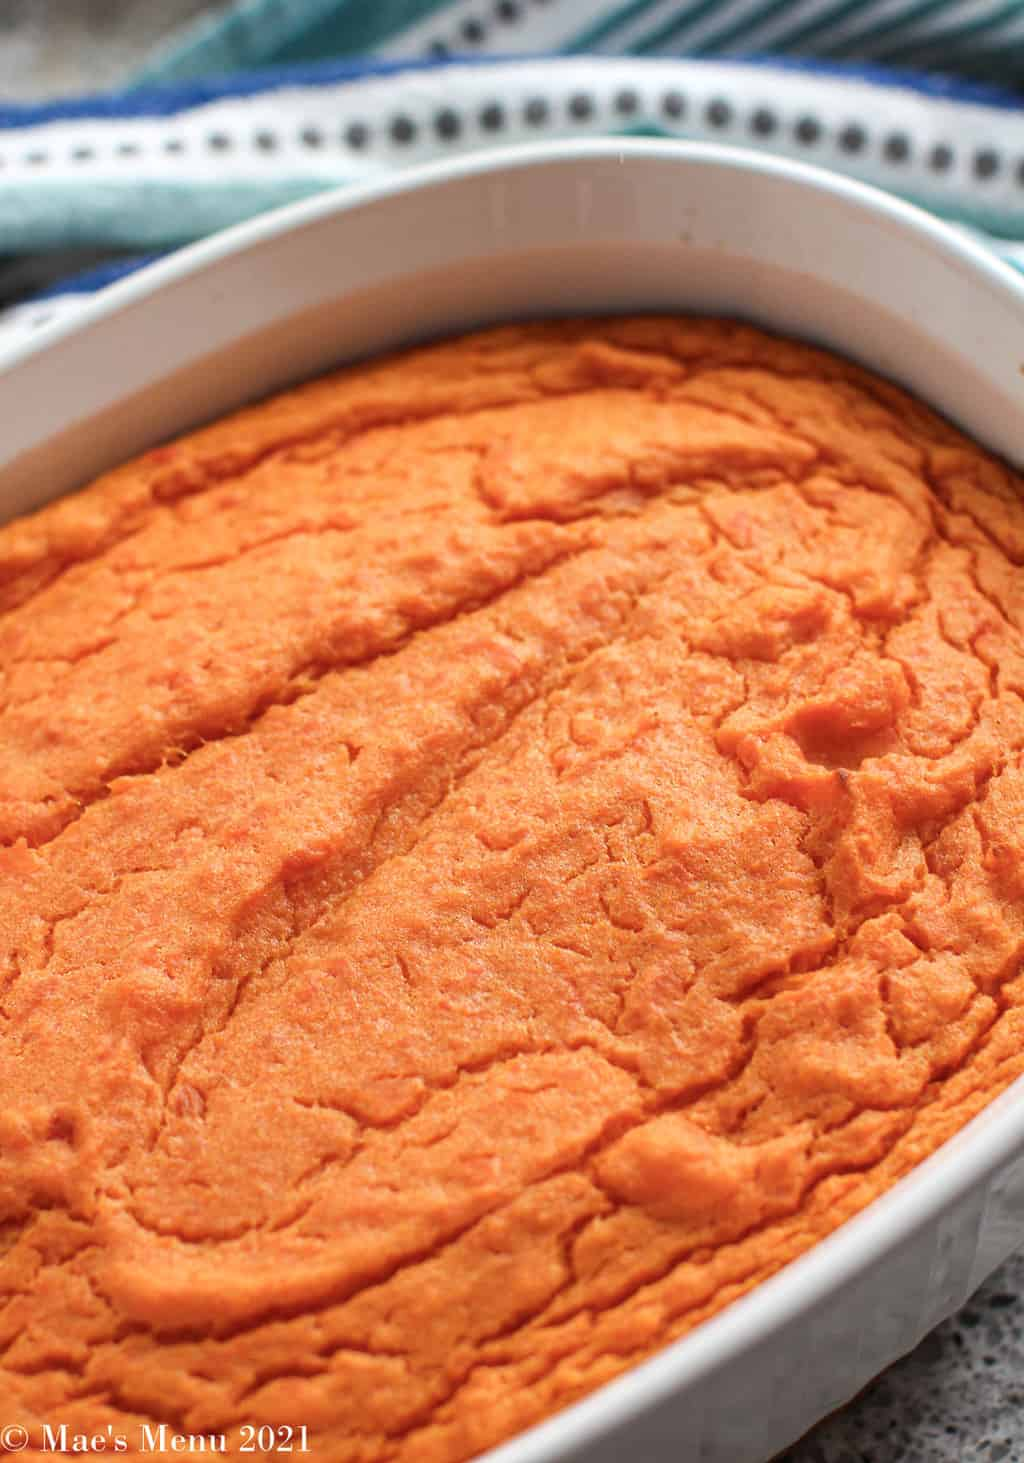 An up-close overhead of a casserole dish of the sweet potato souffle